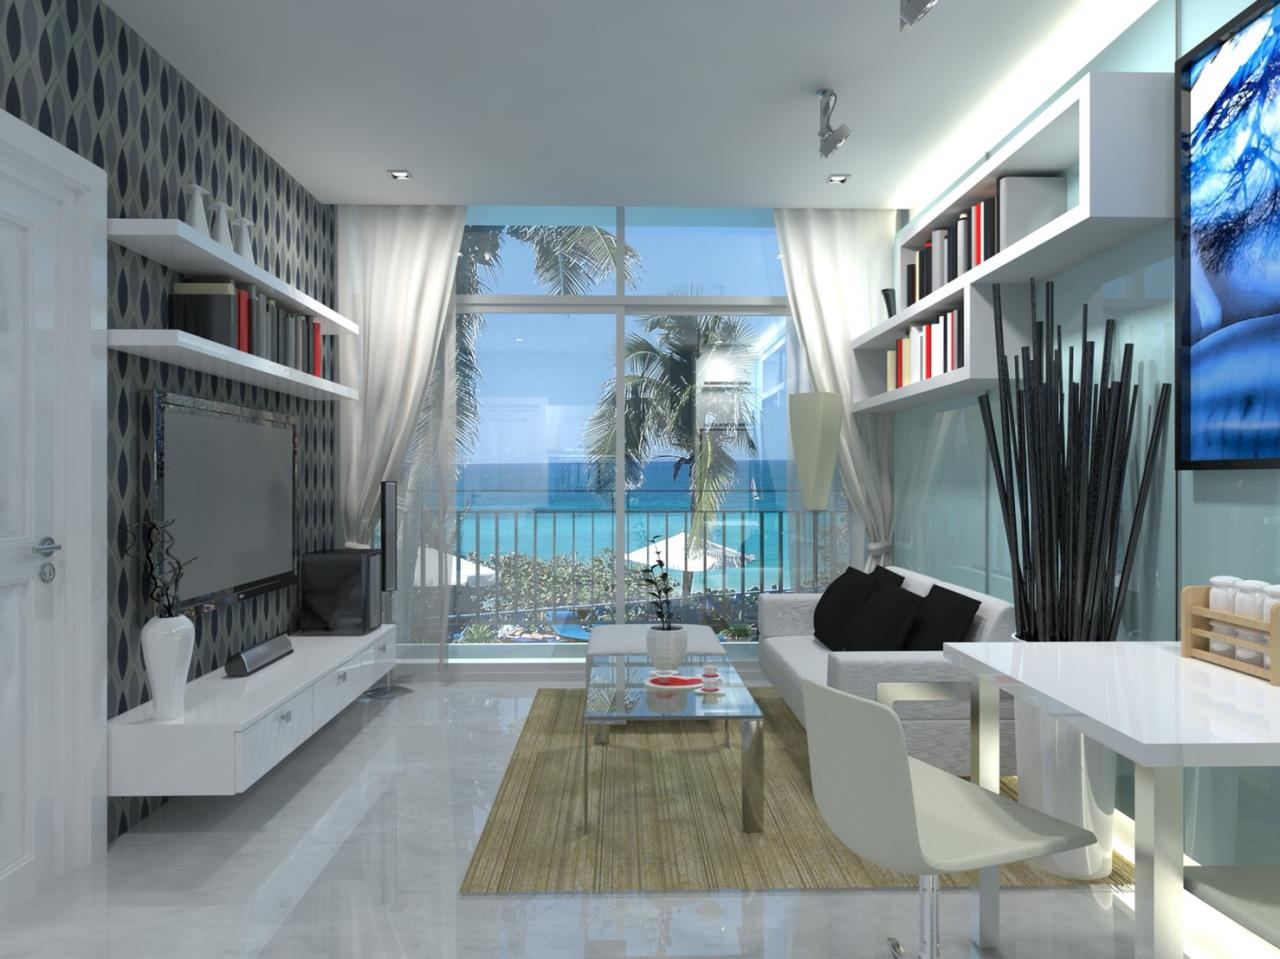 Signature Realty ( Thailand ) Co Ltd Agency's Furnished 1bedroom 46 sq.m condo with jacuzzi floor 21-31 at The Grand Jomtein Beach Pattaya 4